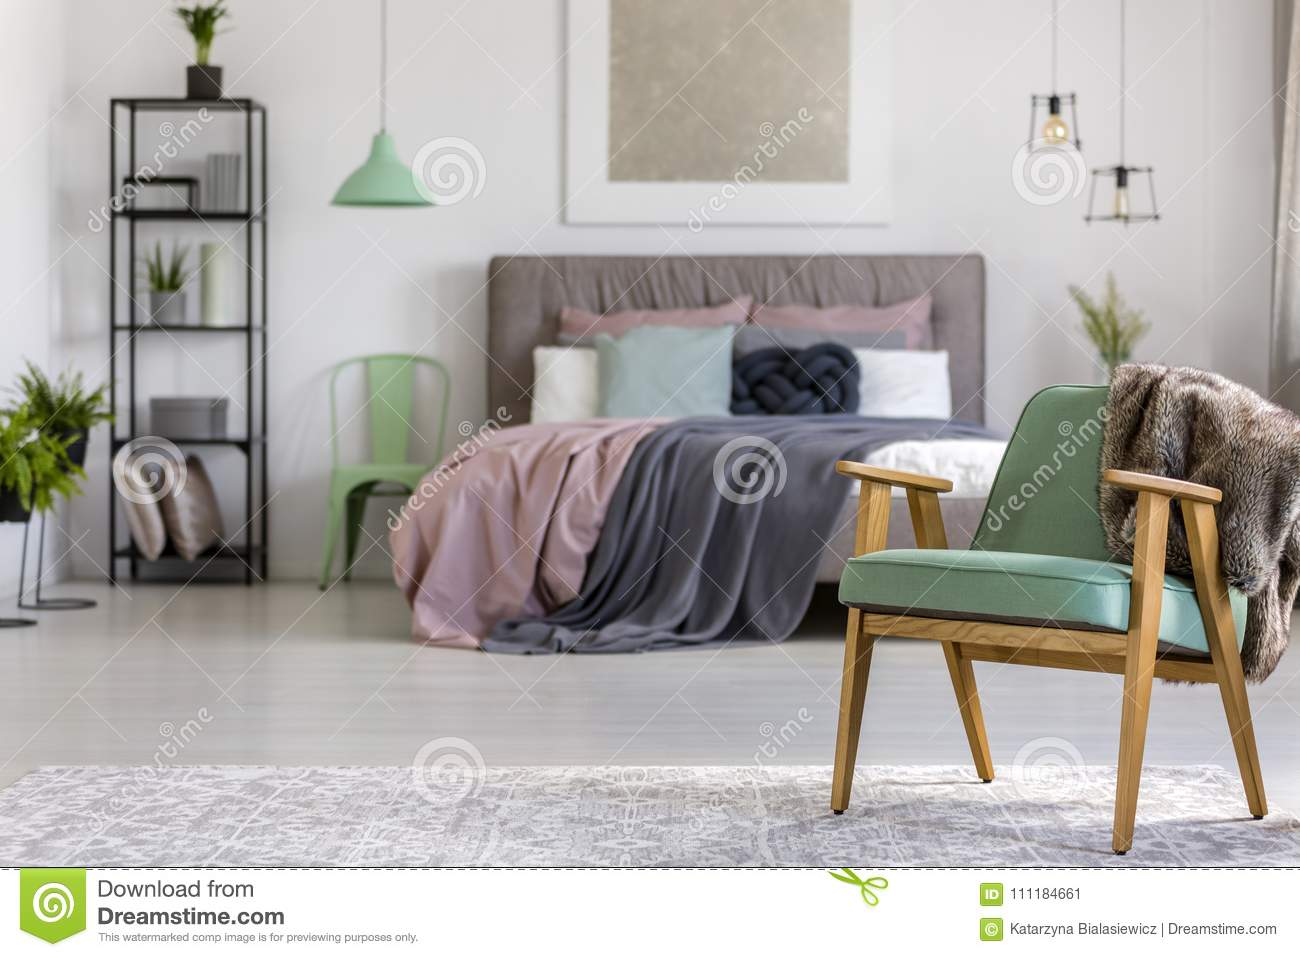 Green wooden armchair in bedroom